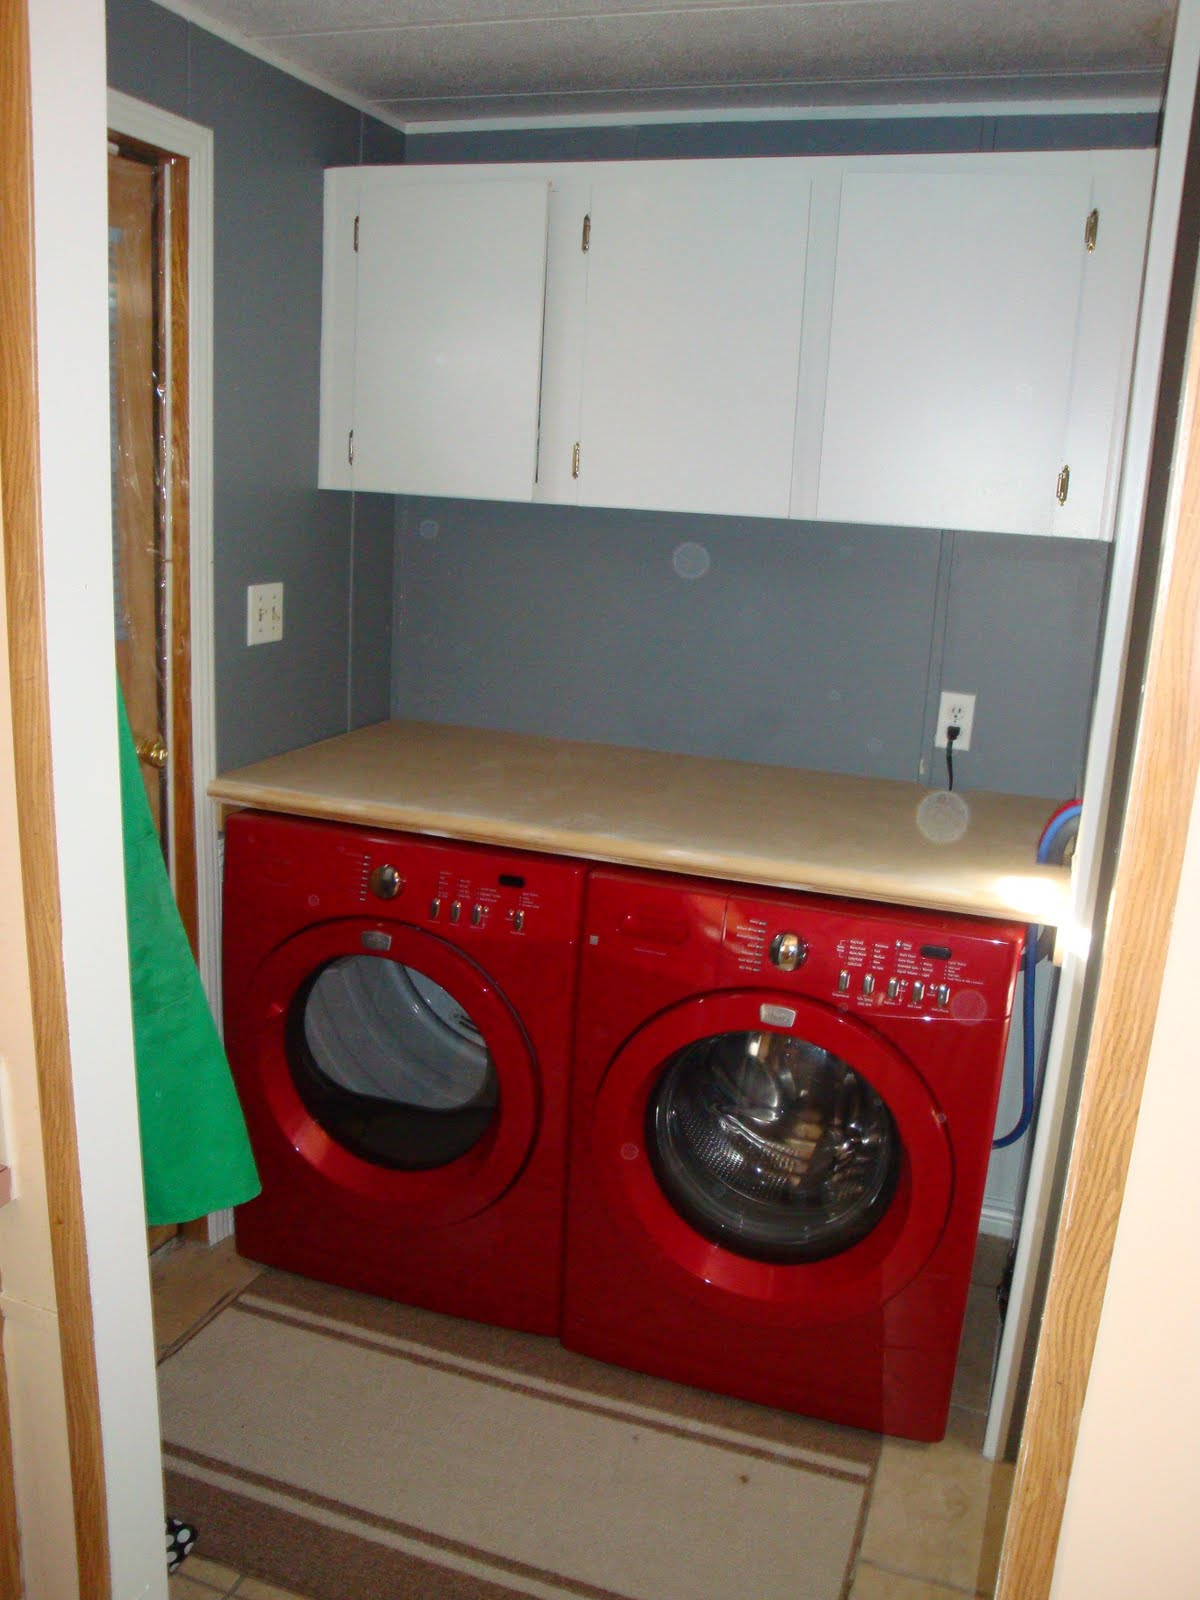 COUNTERTOP.COM : TWO TAKES ON THE LAUNDRY ROOM.